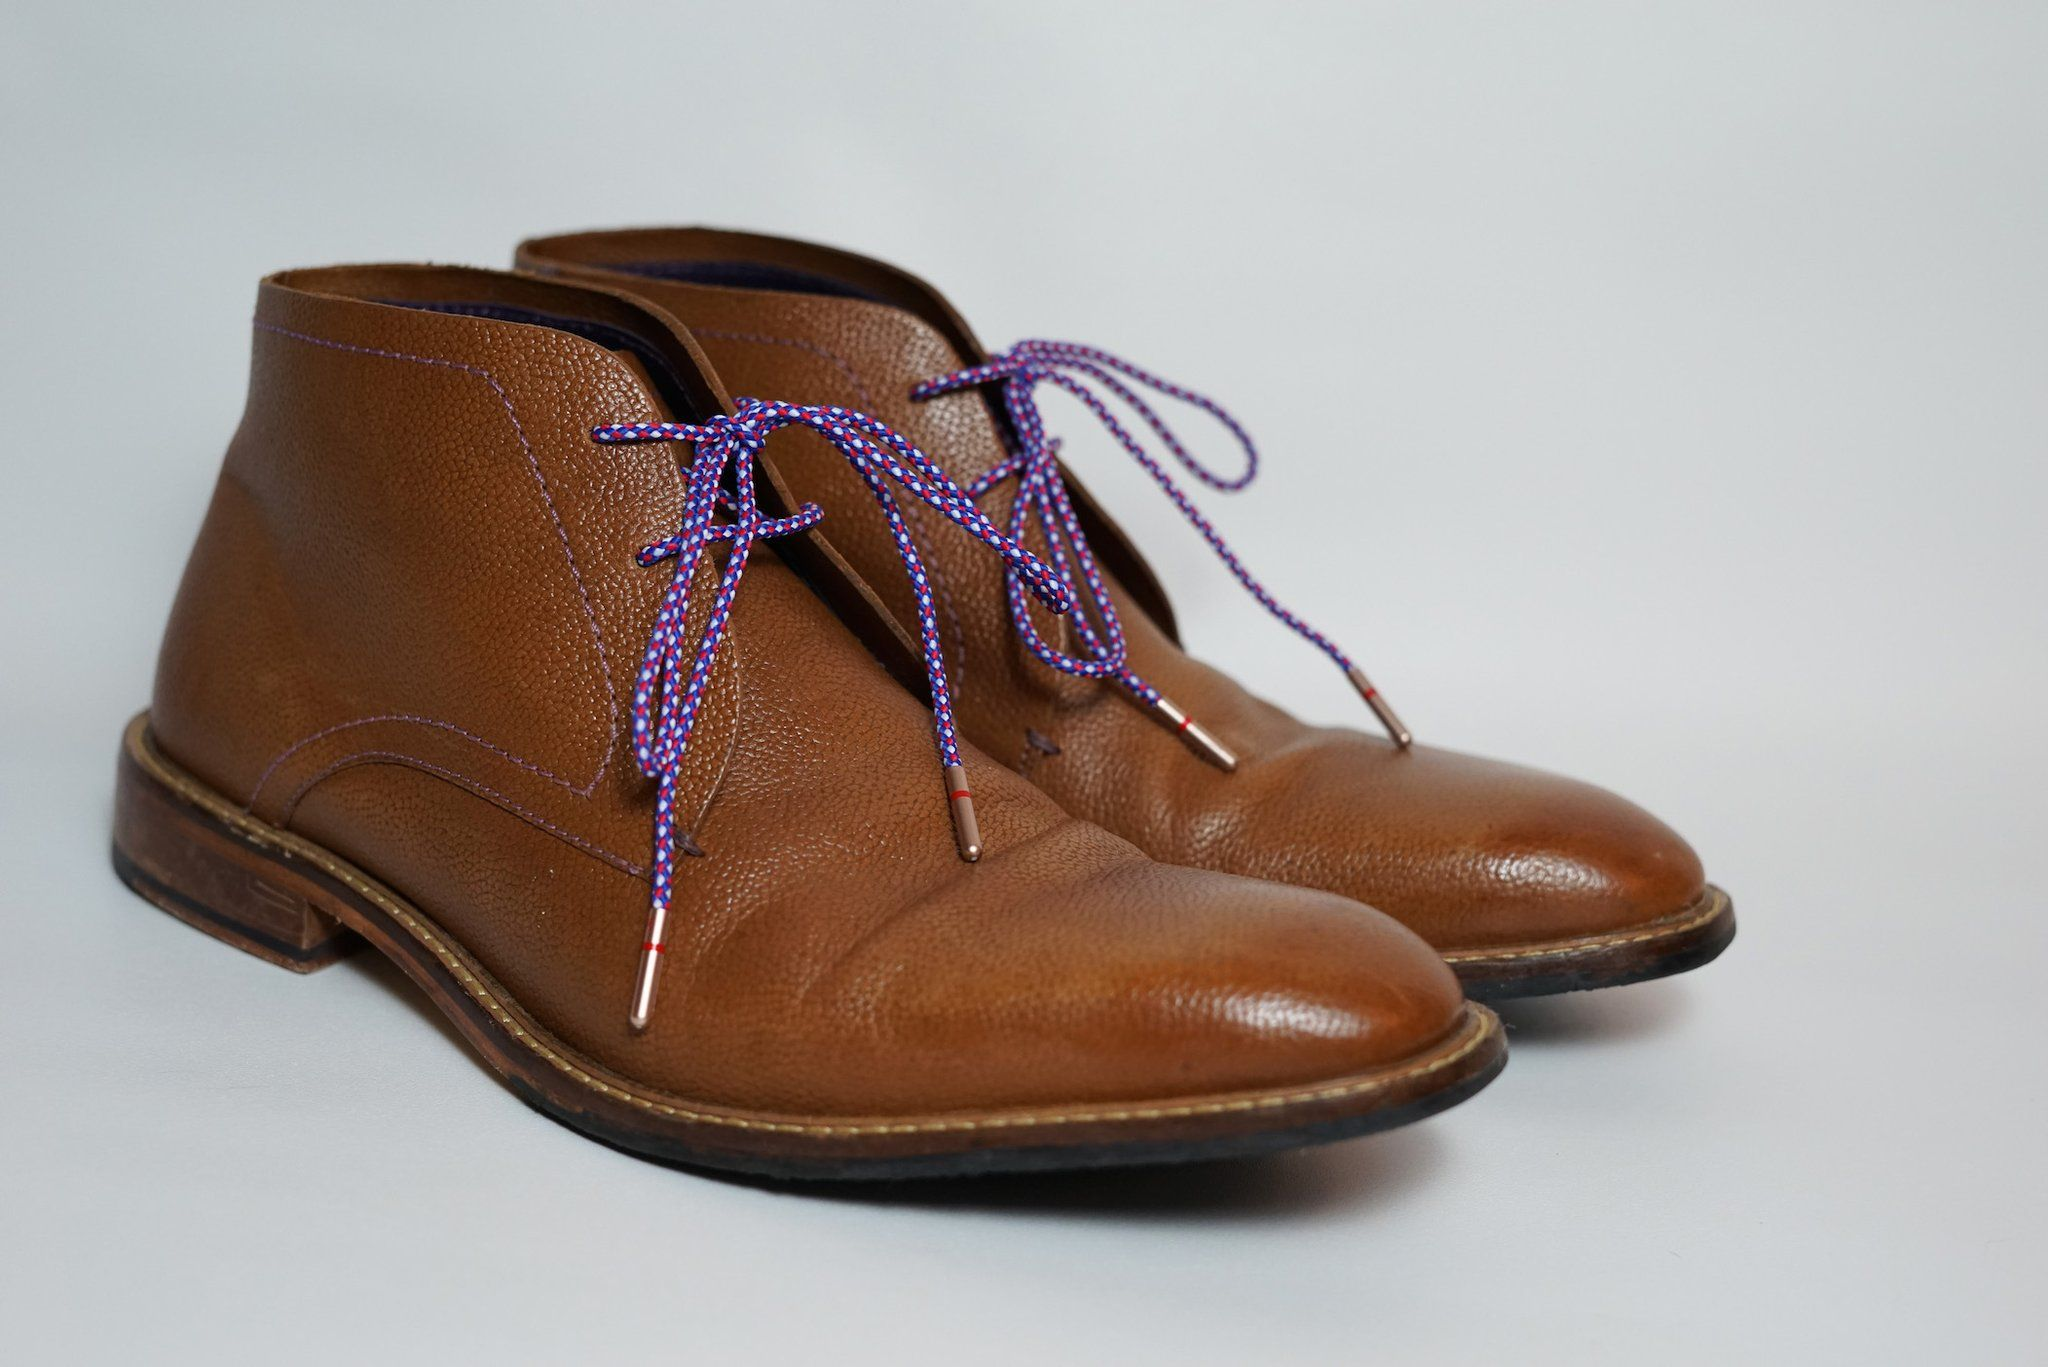 67b6ffba23632 Whiskers Laces | Stocking stuffers for Him | Shoes, Boots, Casual shoes